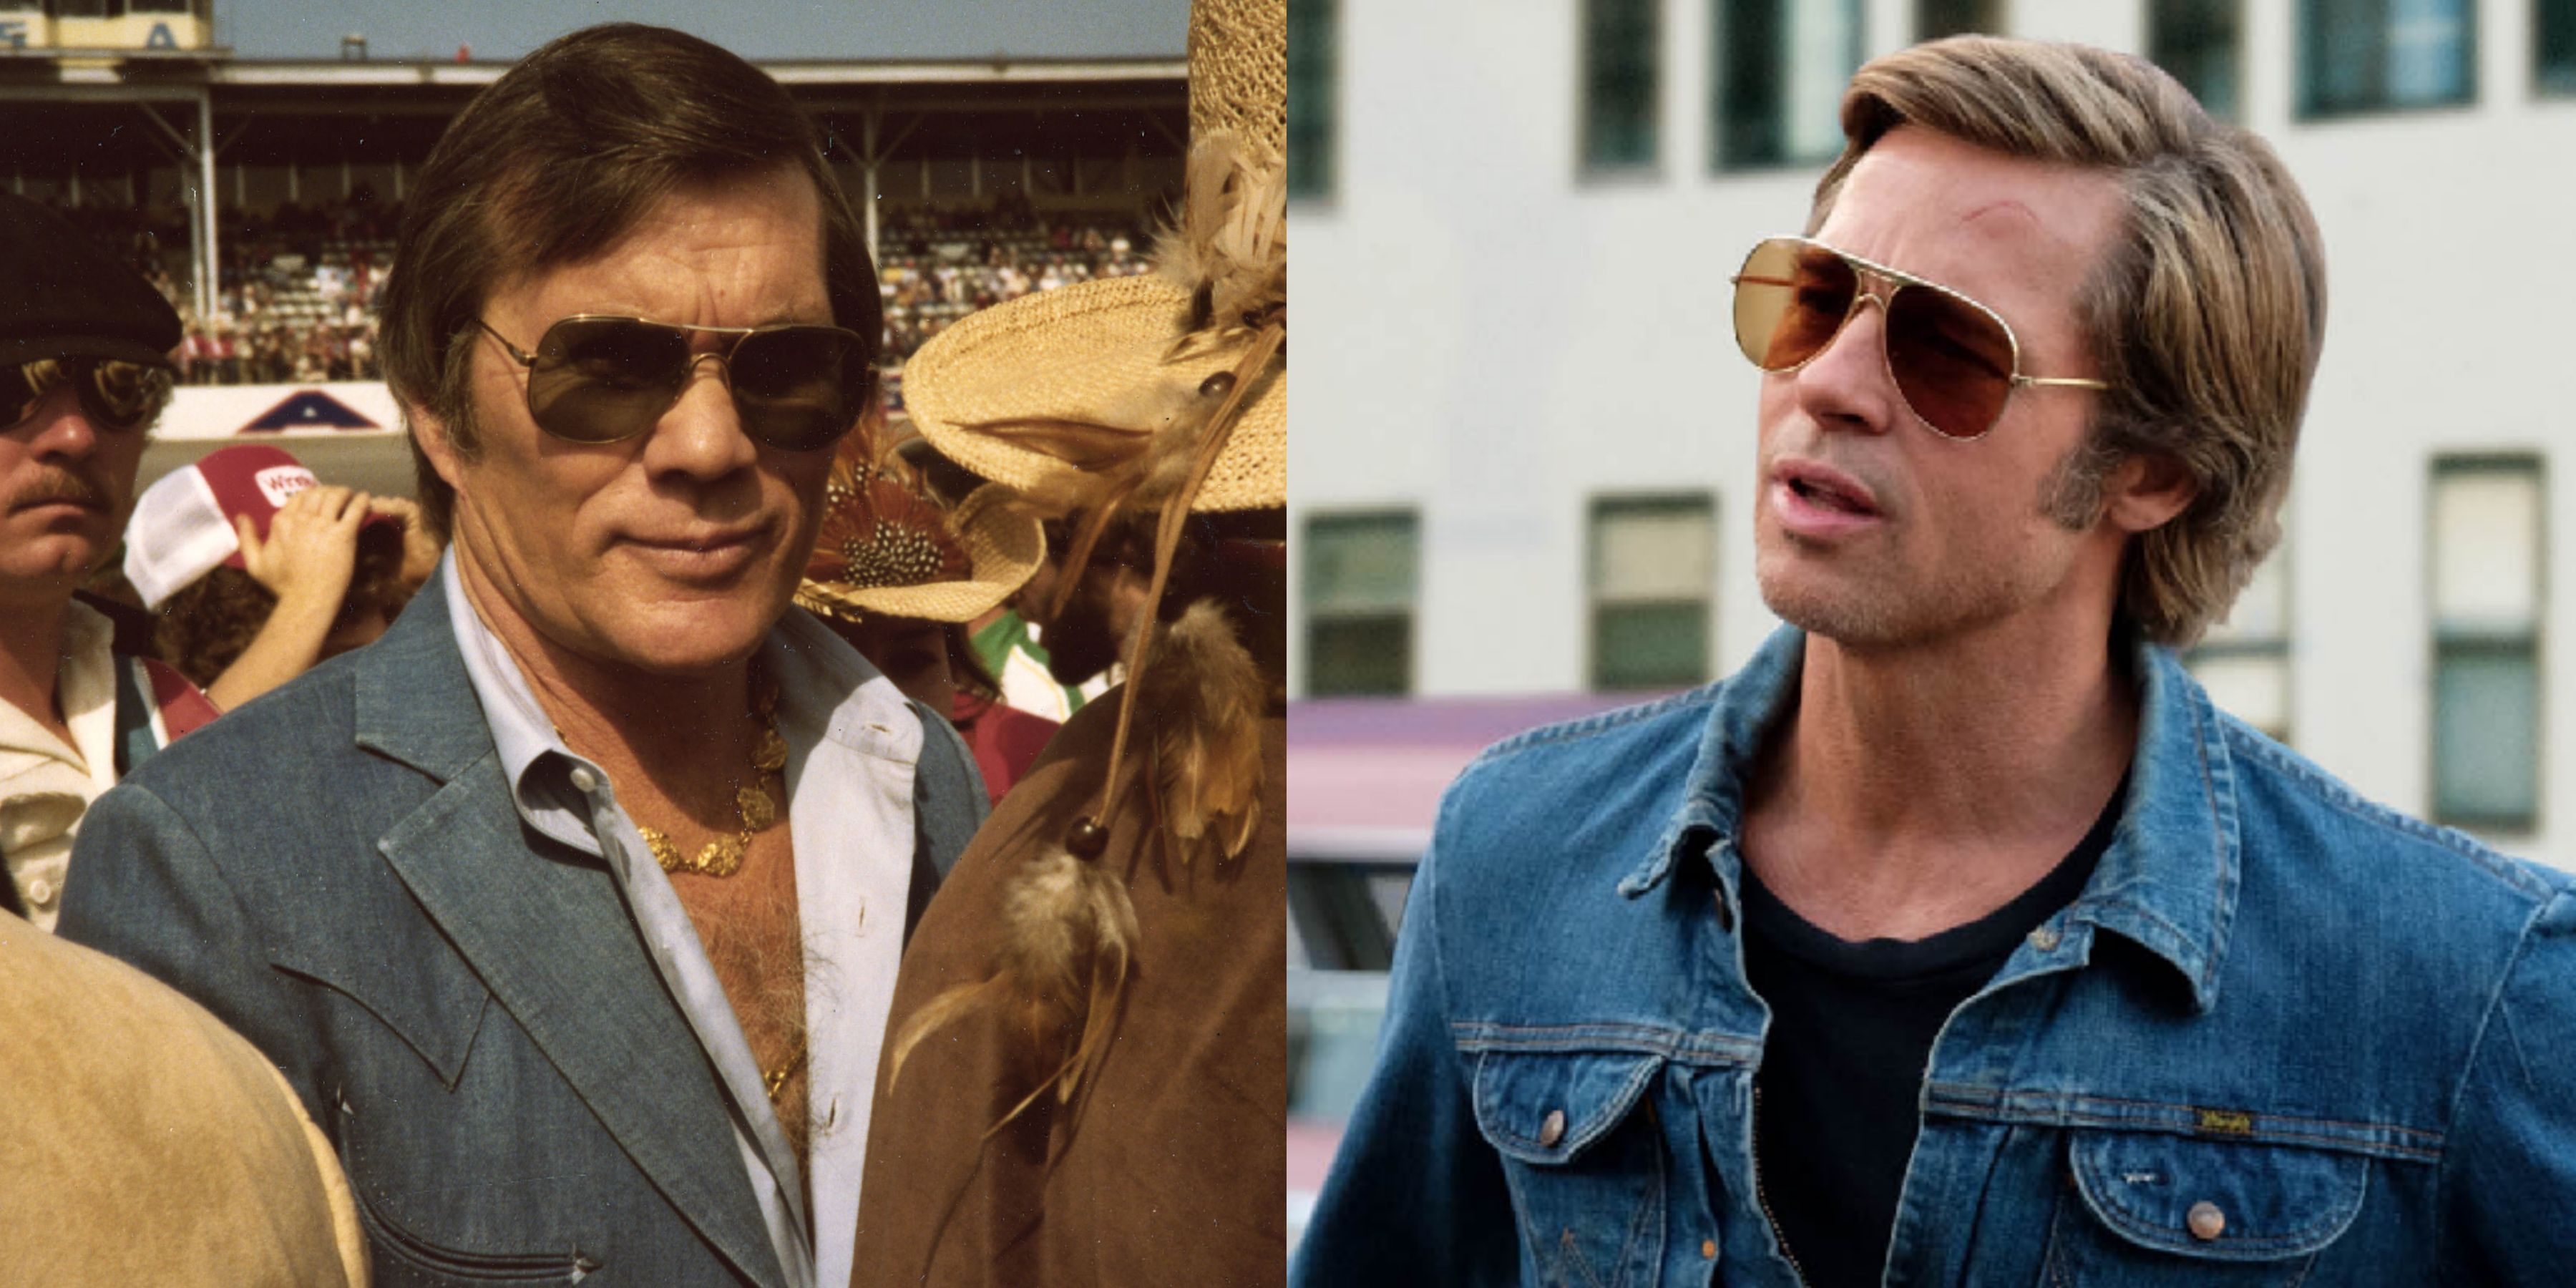 Image result for once upon a time in hollywood brad pitt stuntman